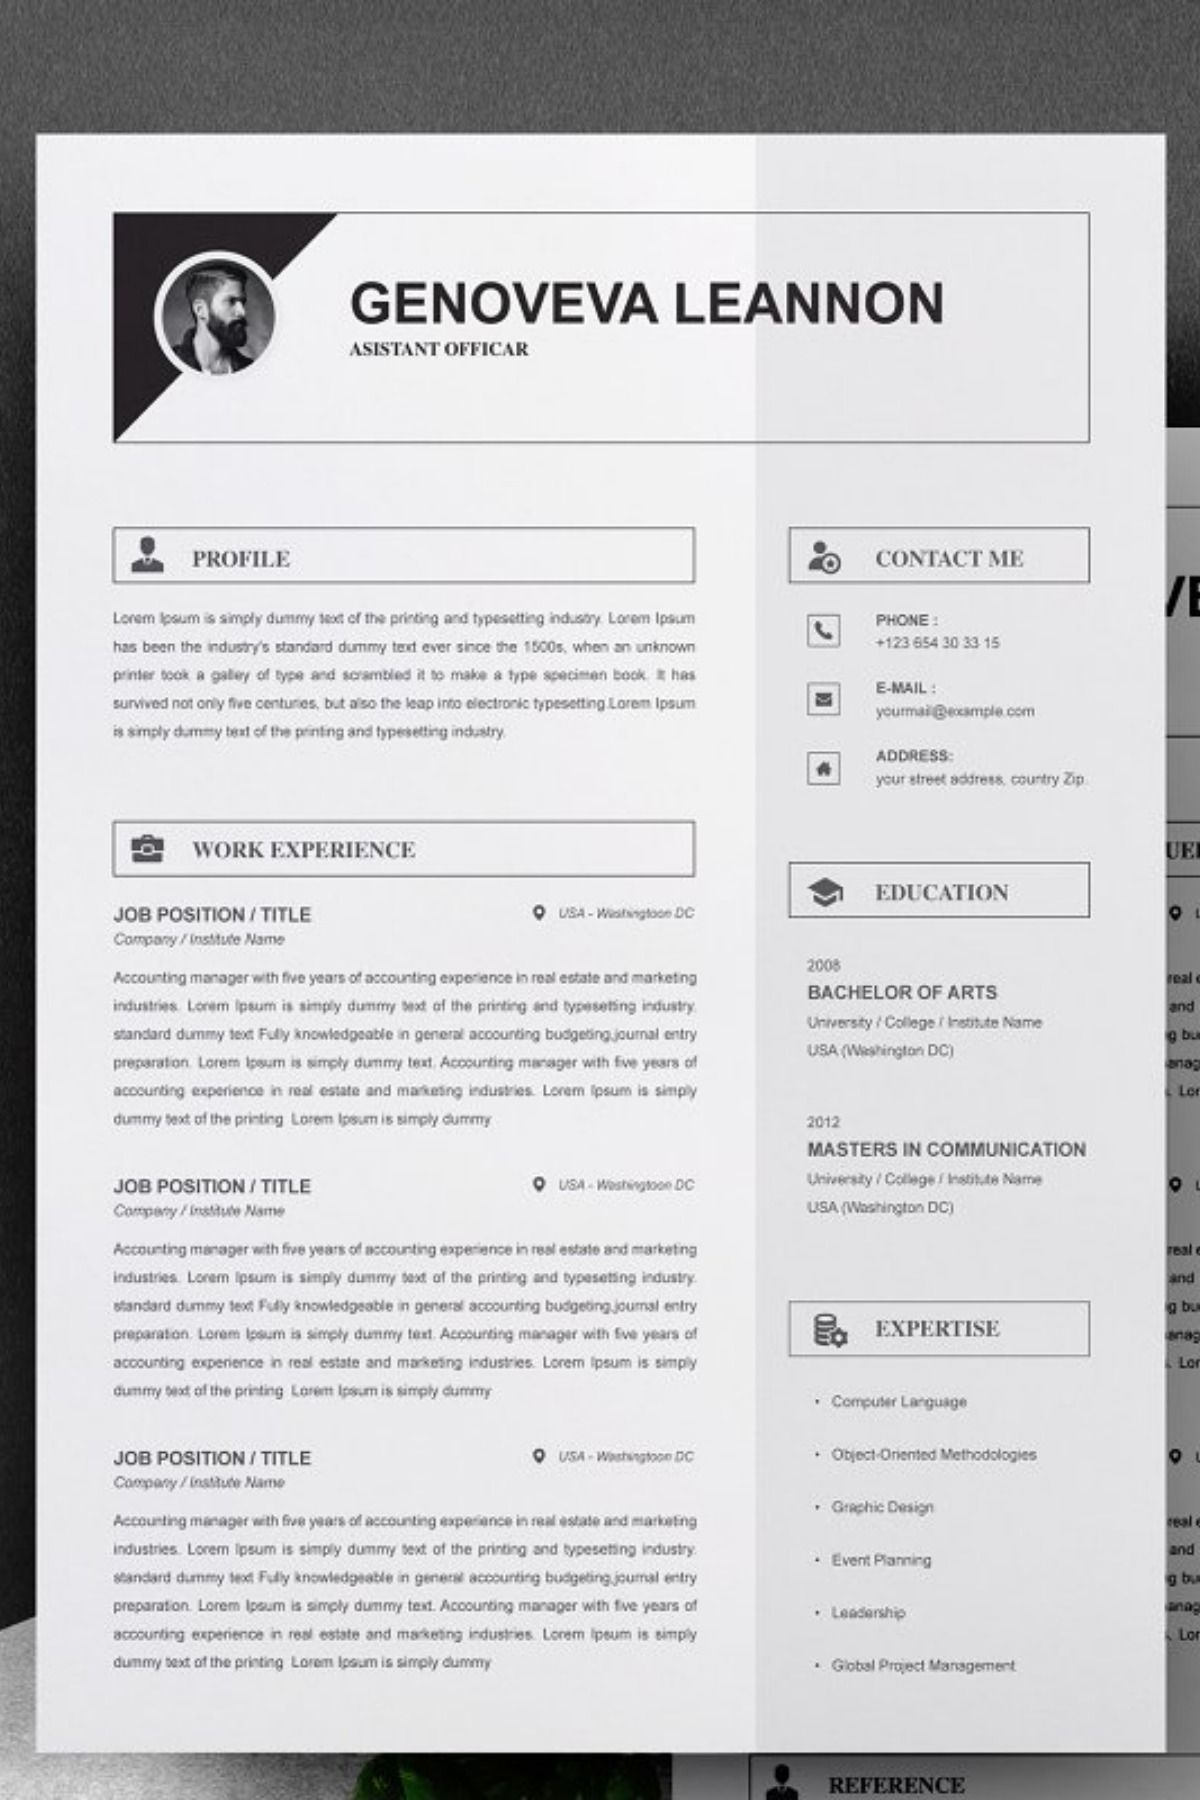 Resume Template And Cover Letter Microsoft Word Document Resume Template Cover Letter Template